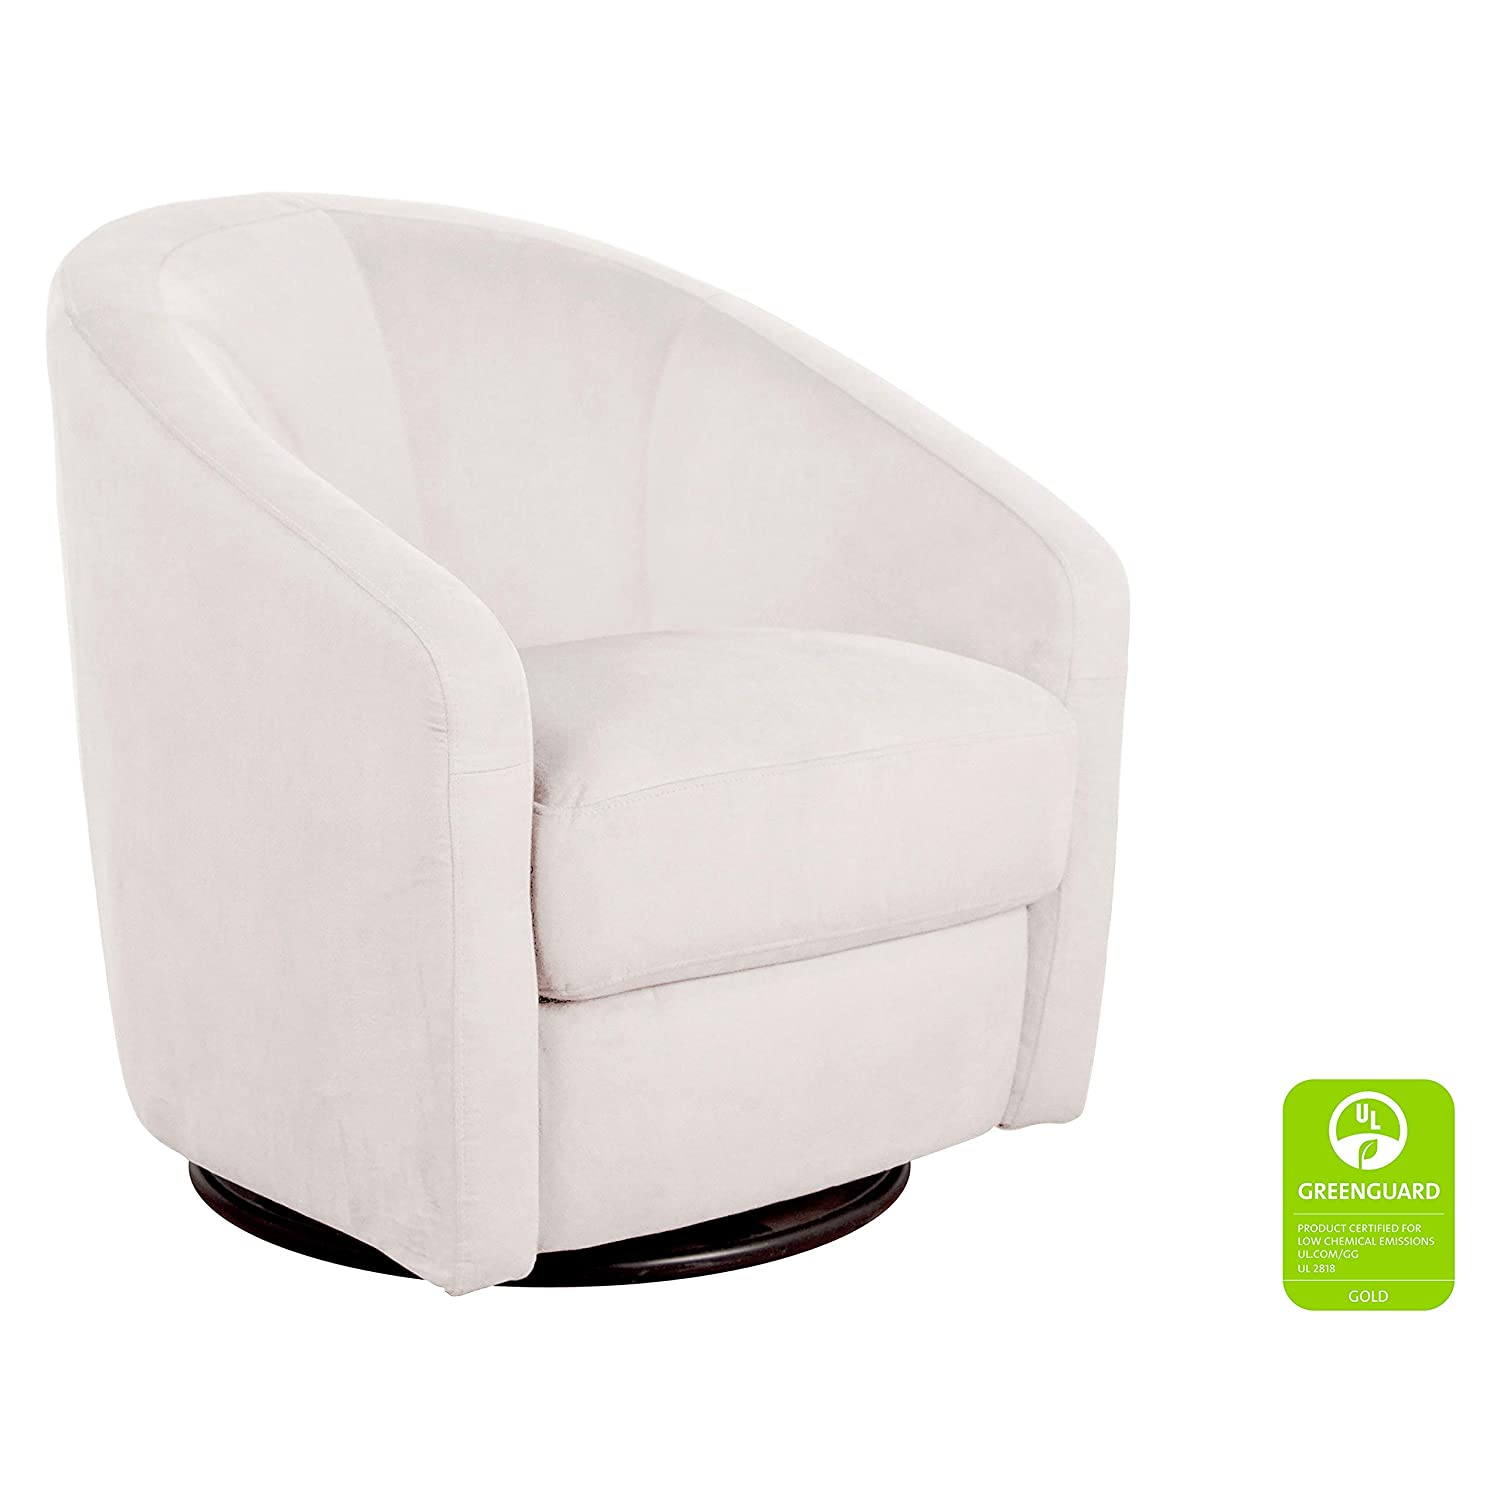 Groovy Babyletto Madison Swivel Glider Ecru Microsuede Bralicious Painted Fabric Chair Ideas Braliciousco